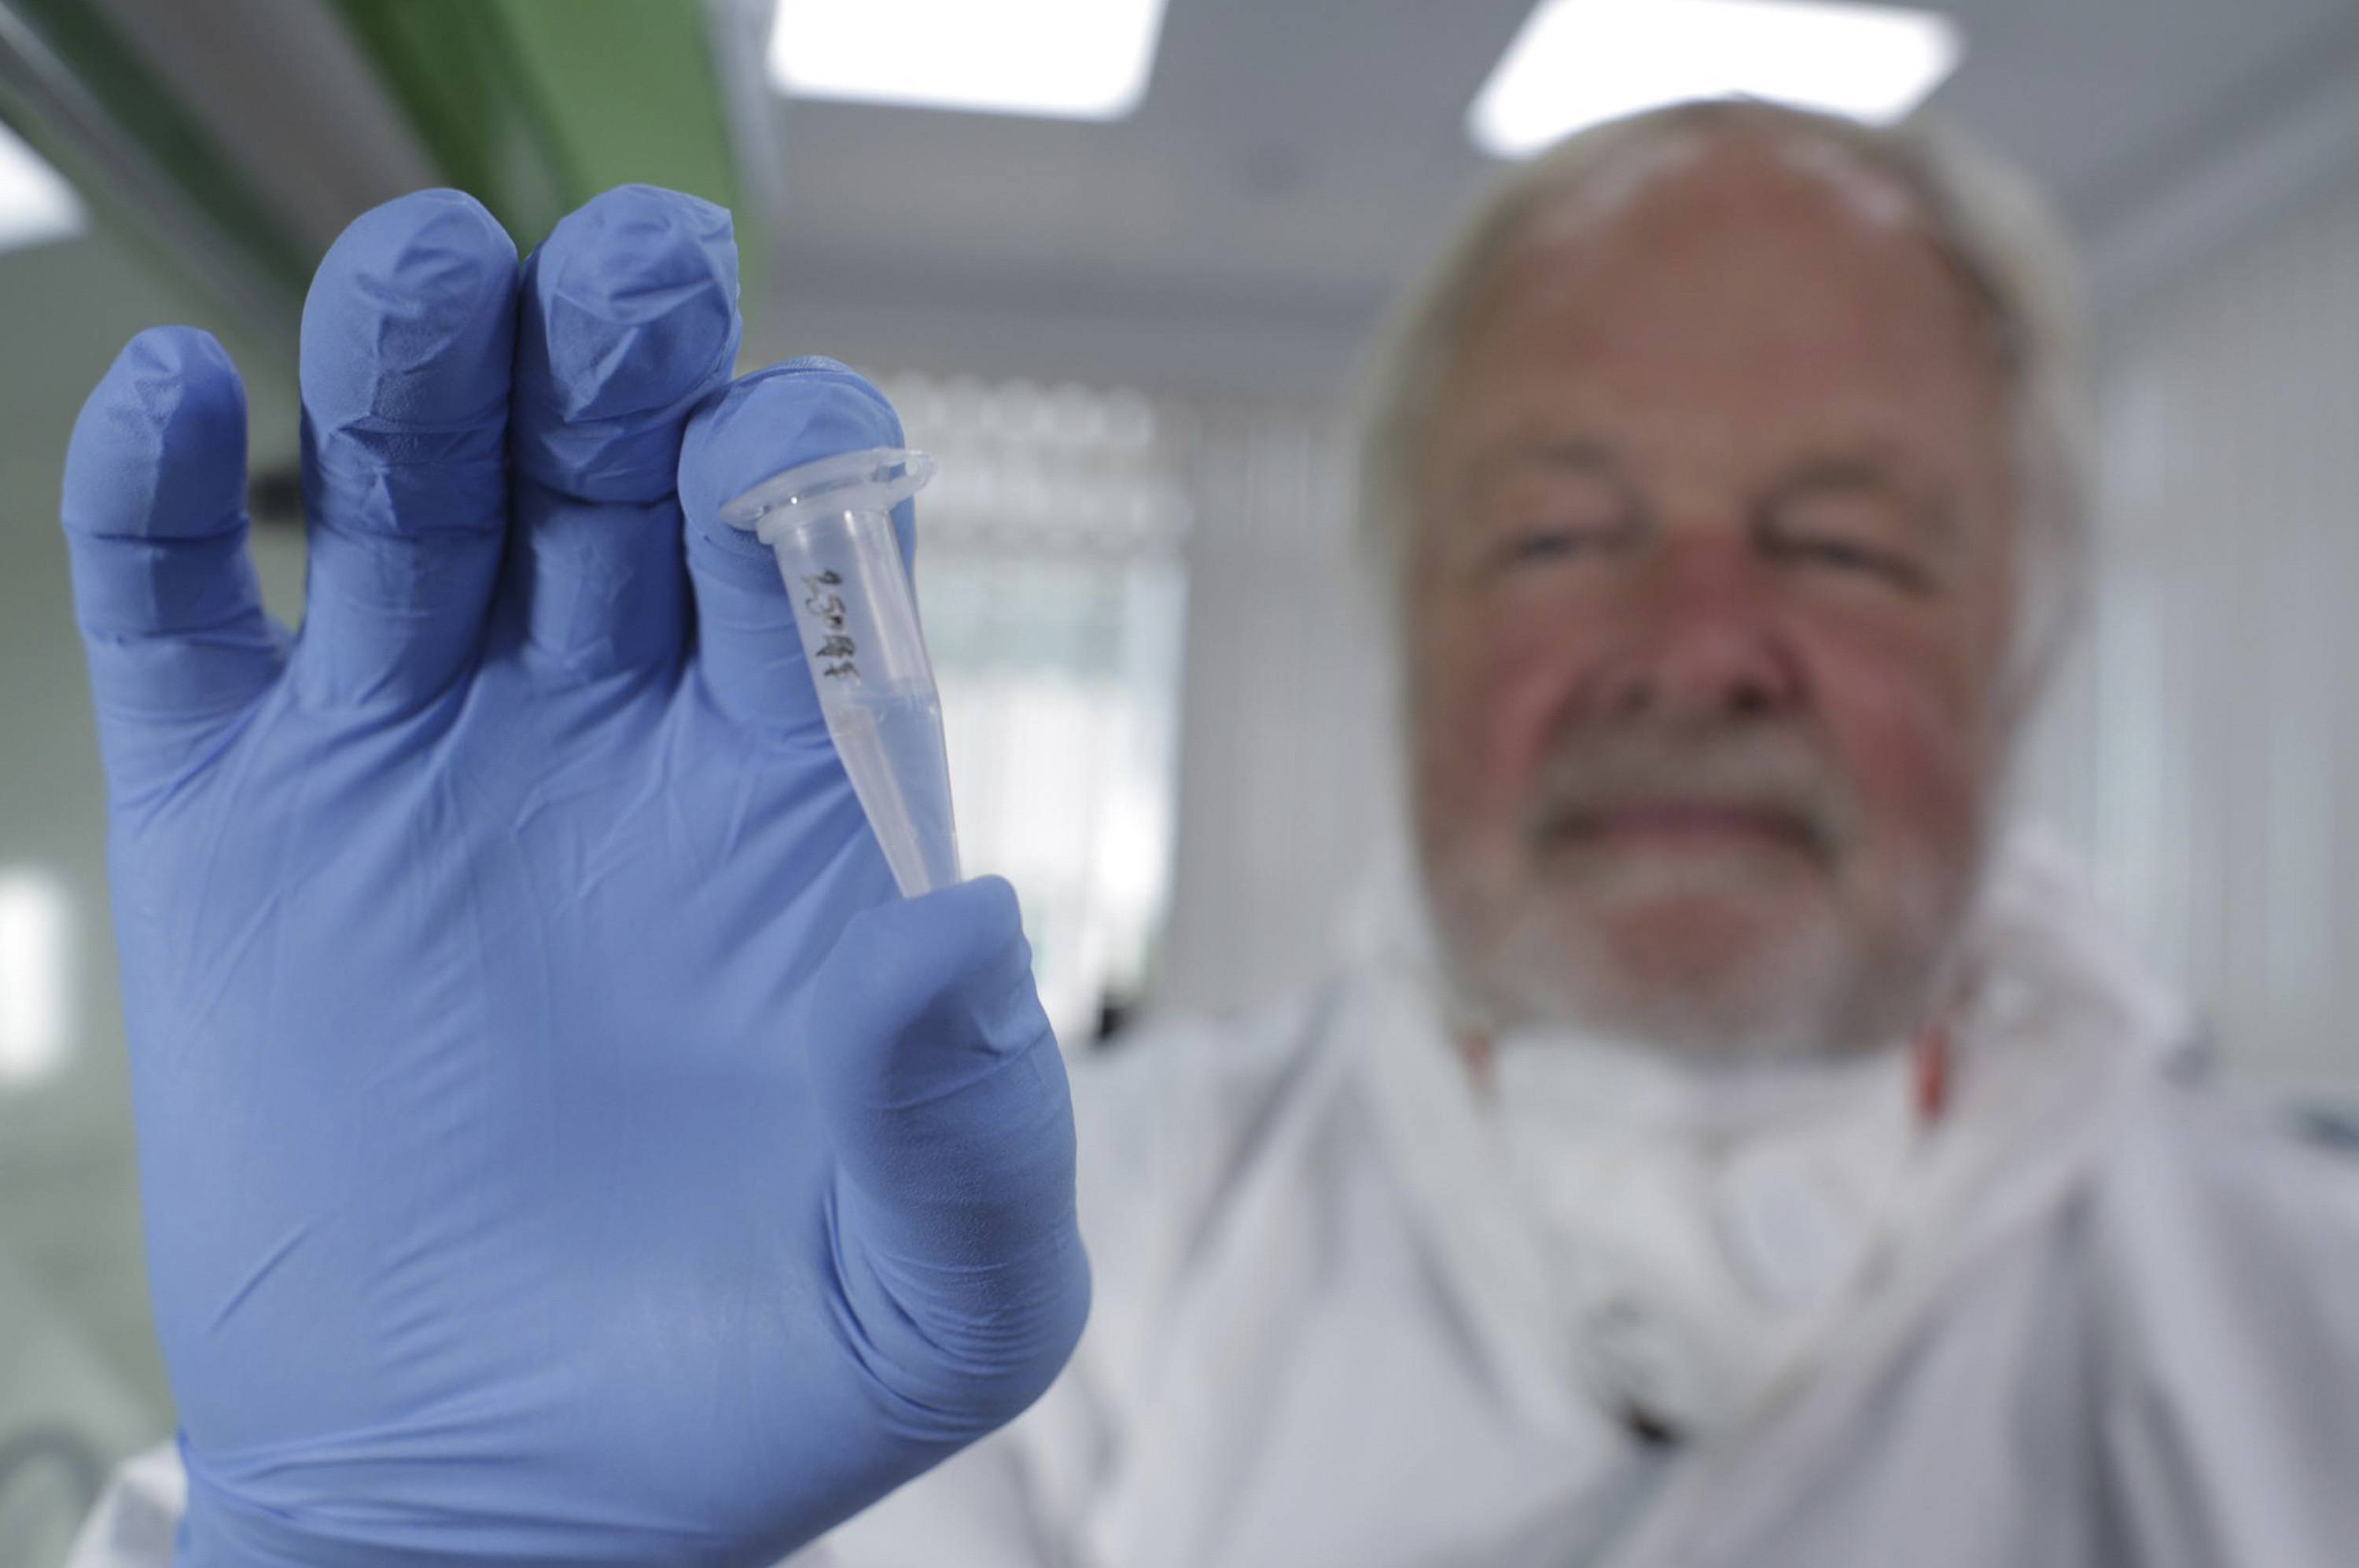 Oxford University genetics professor Bryan Sykes with a prepared DNA sample taken from hair from a Himalayan animal. In 2012, researchers at Oxford University and the Lausanne Museum of Zoology issued an open call asking museums, scientists and Bigfoot aficionados to share any samples they thought were from the mythical apelike creatures.